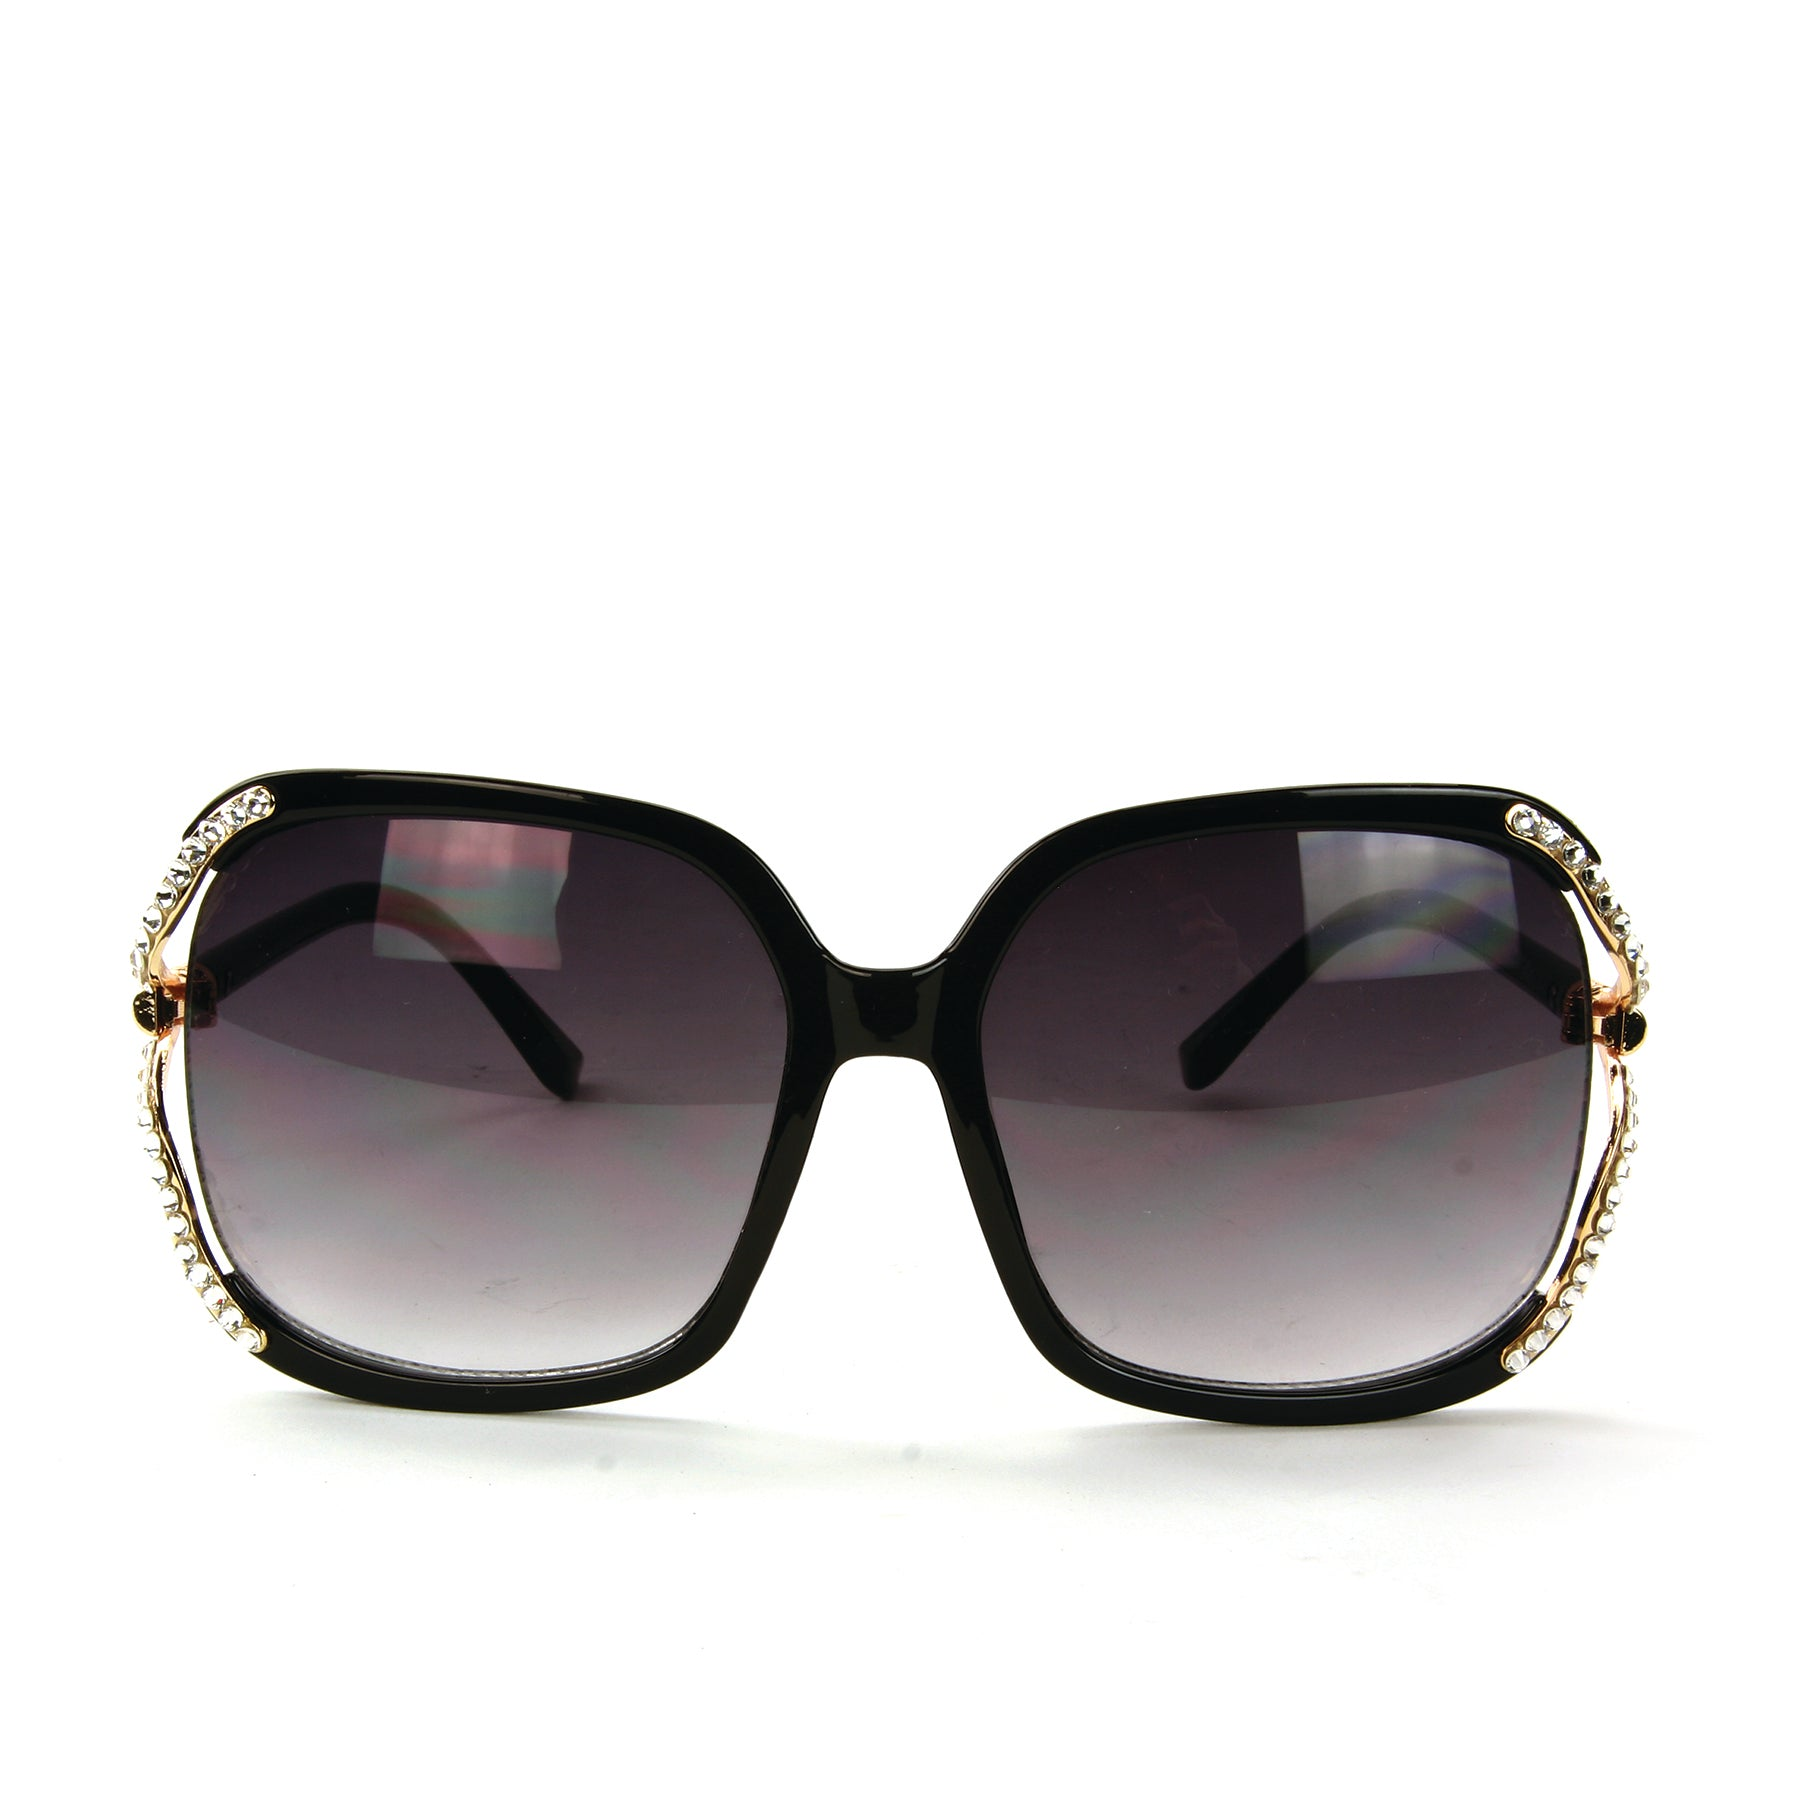 Sunglasses Made with Swarovski Elements, black color, front view